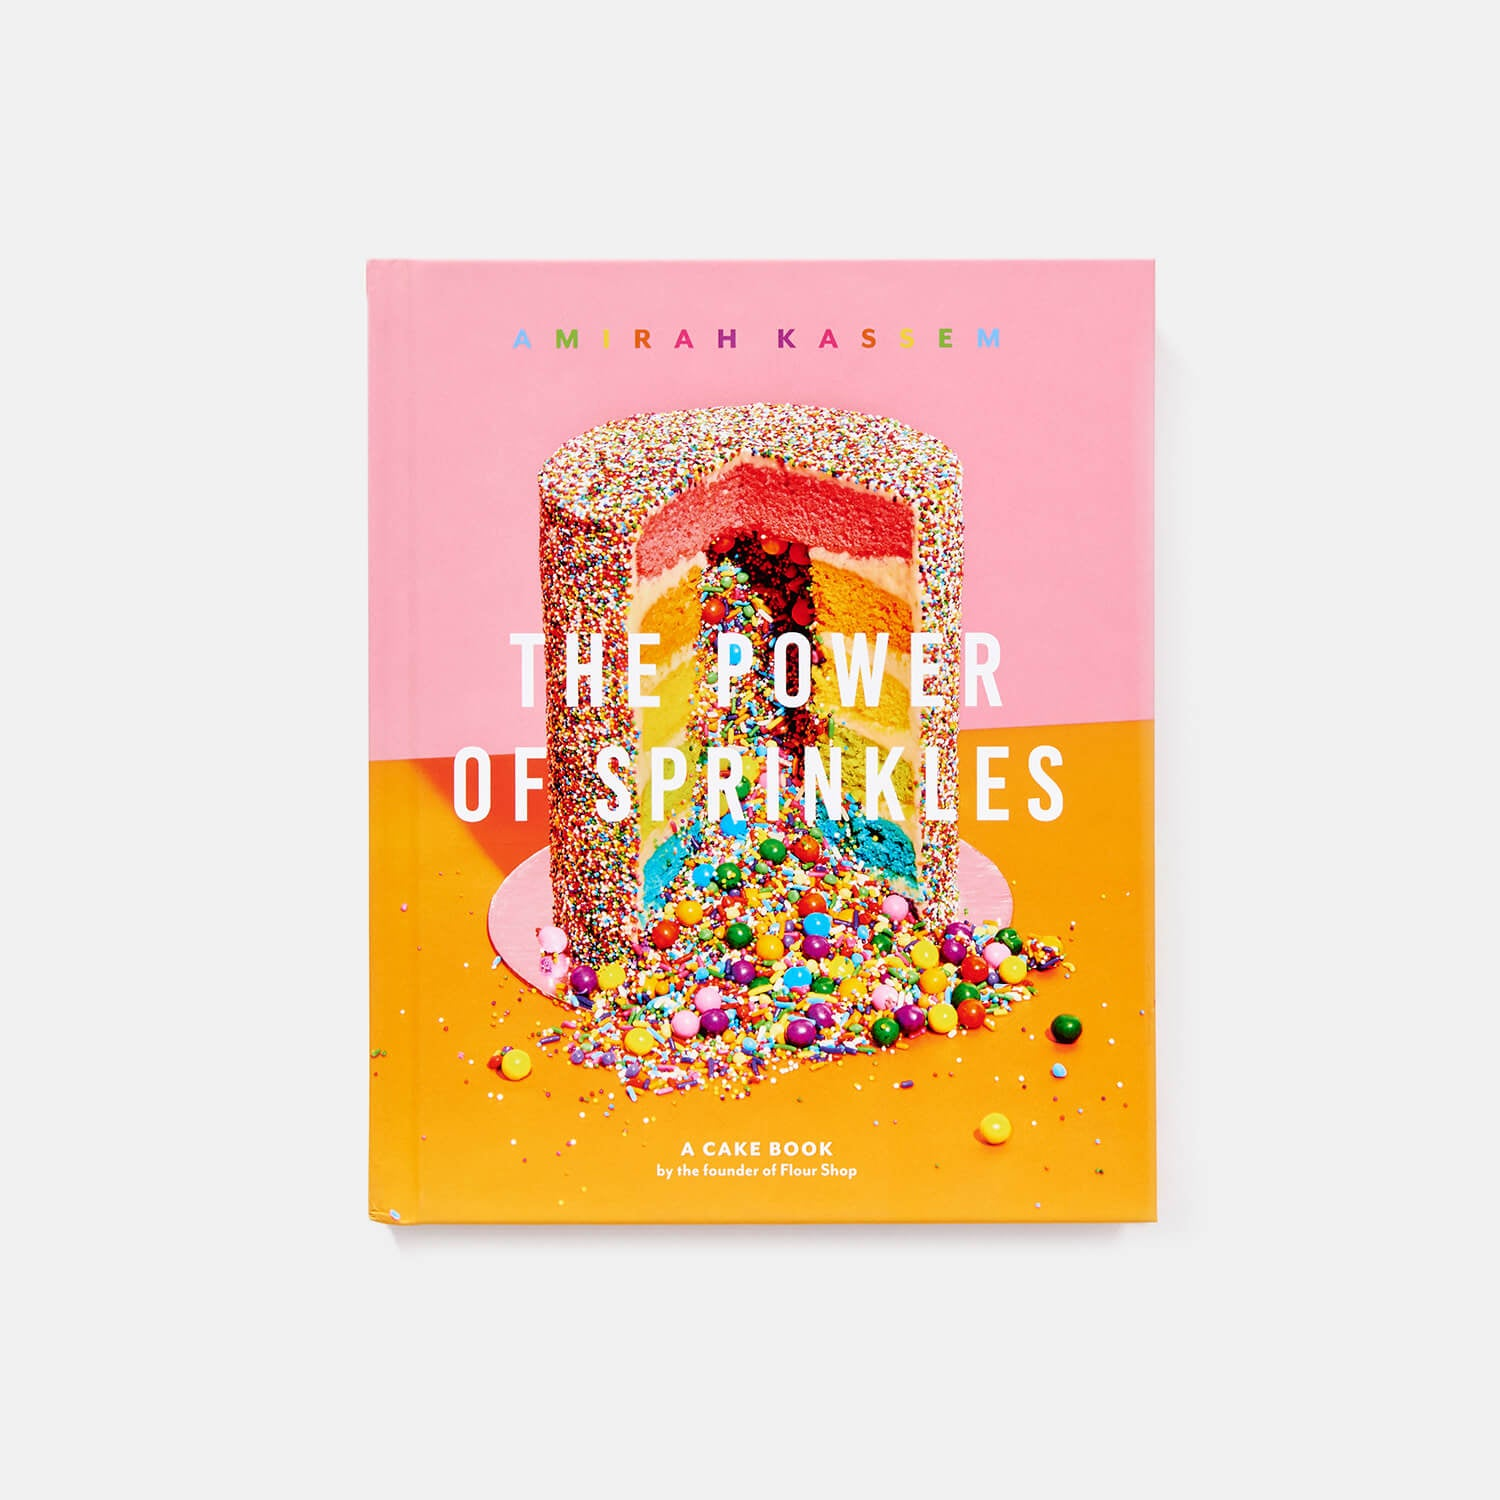 the power of sprinkles: a cake book by the founder of flour shop table book | accessories